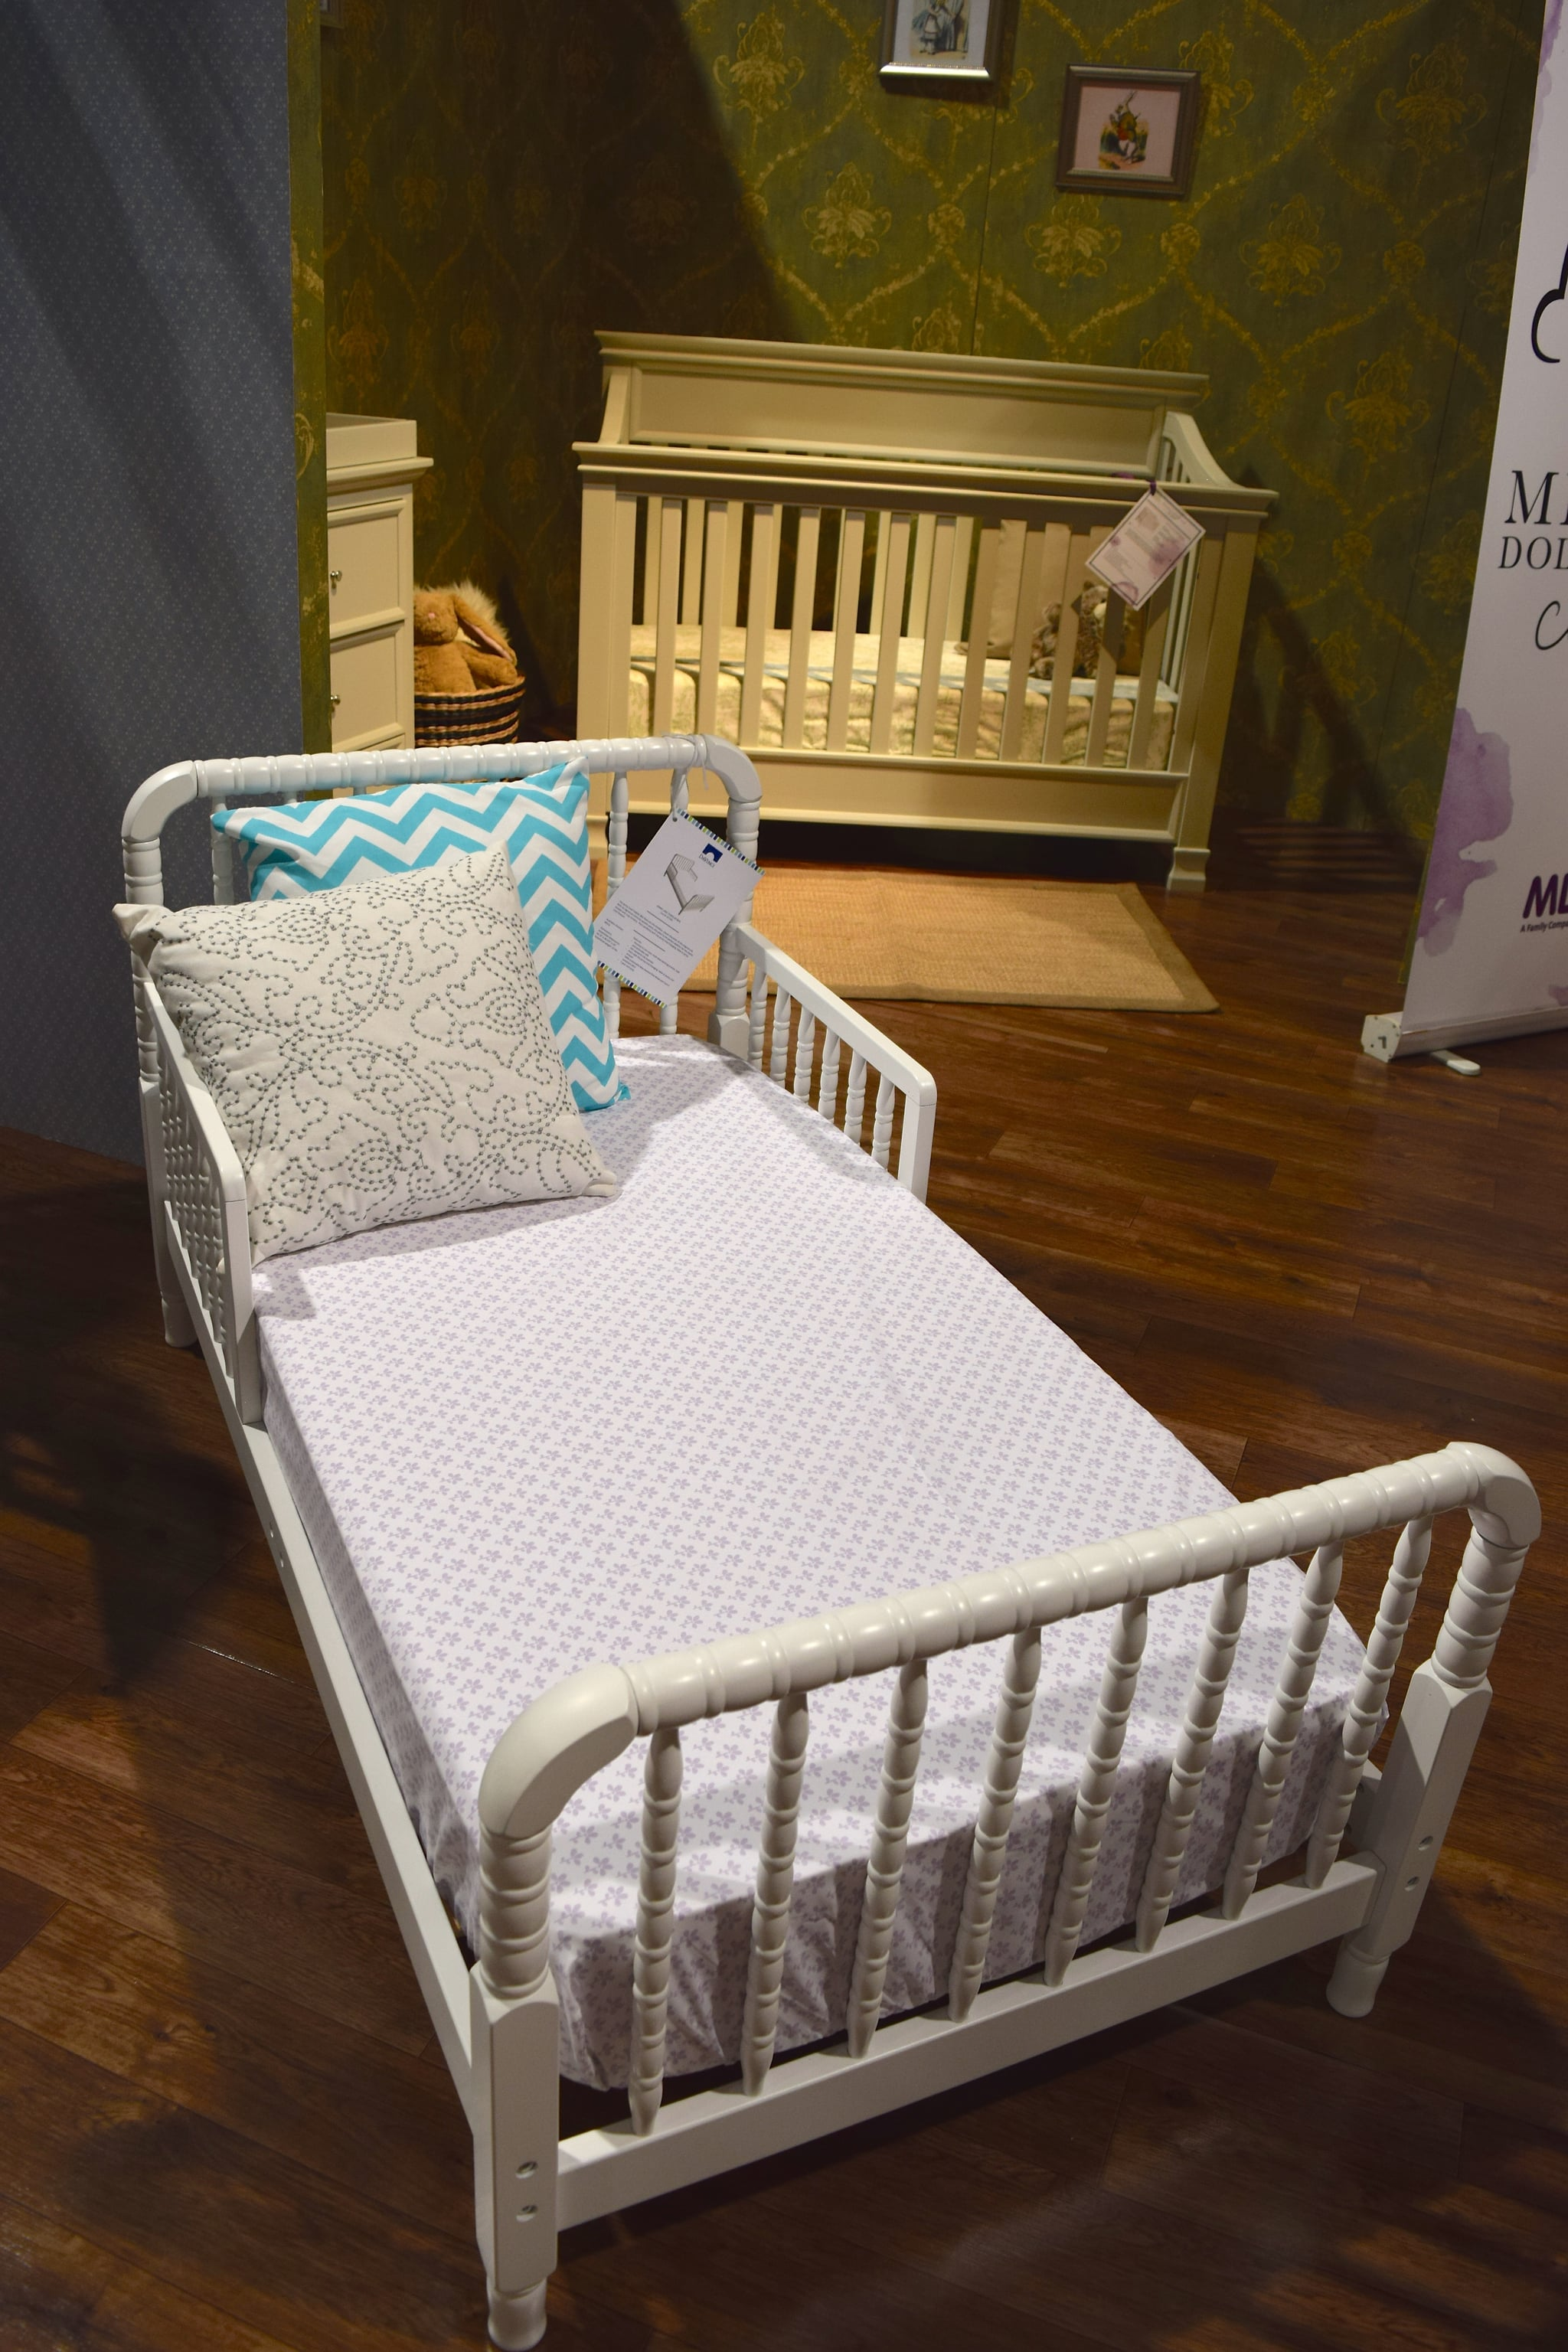 DaVinci Jenny Lind Toddler Bed | 120 New Baby and Kid ...